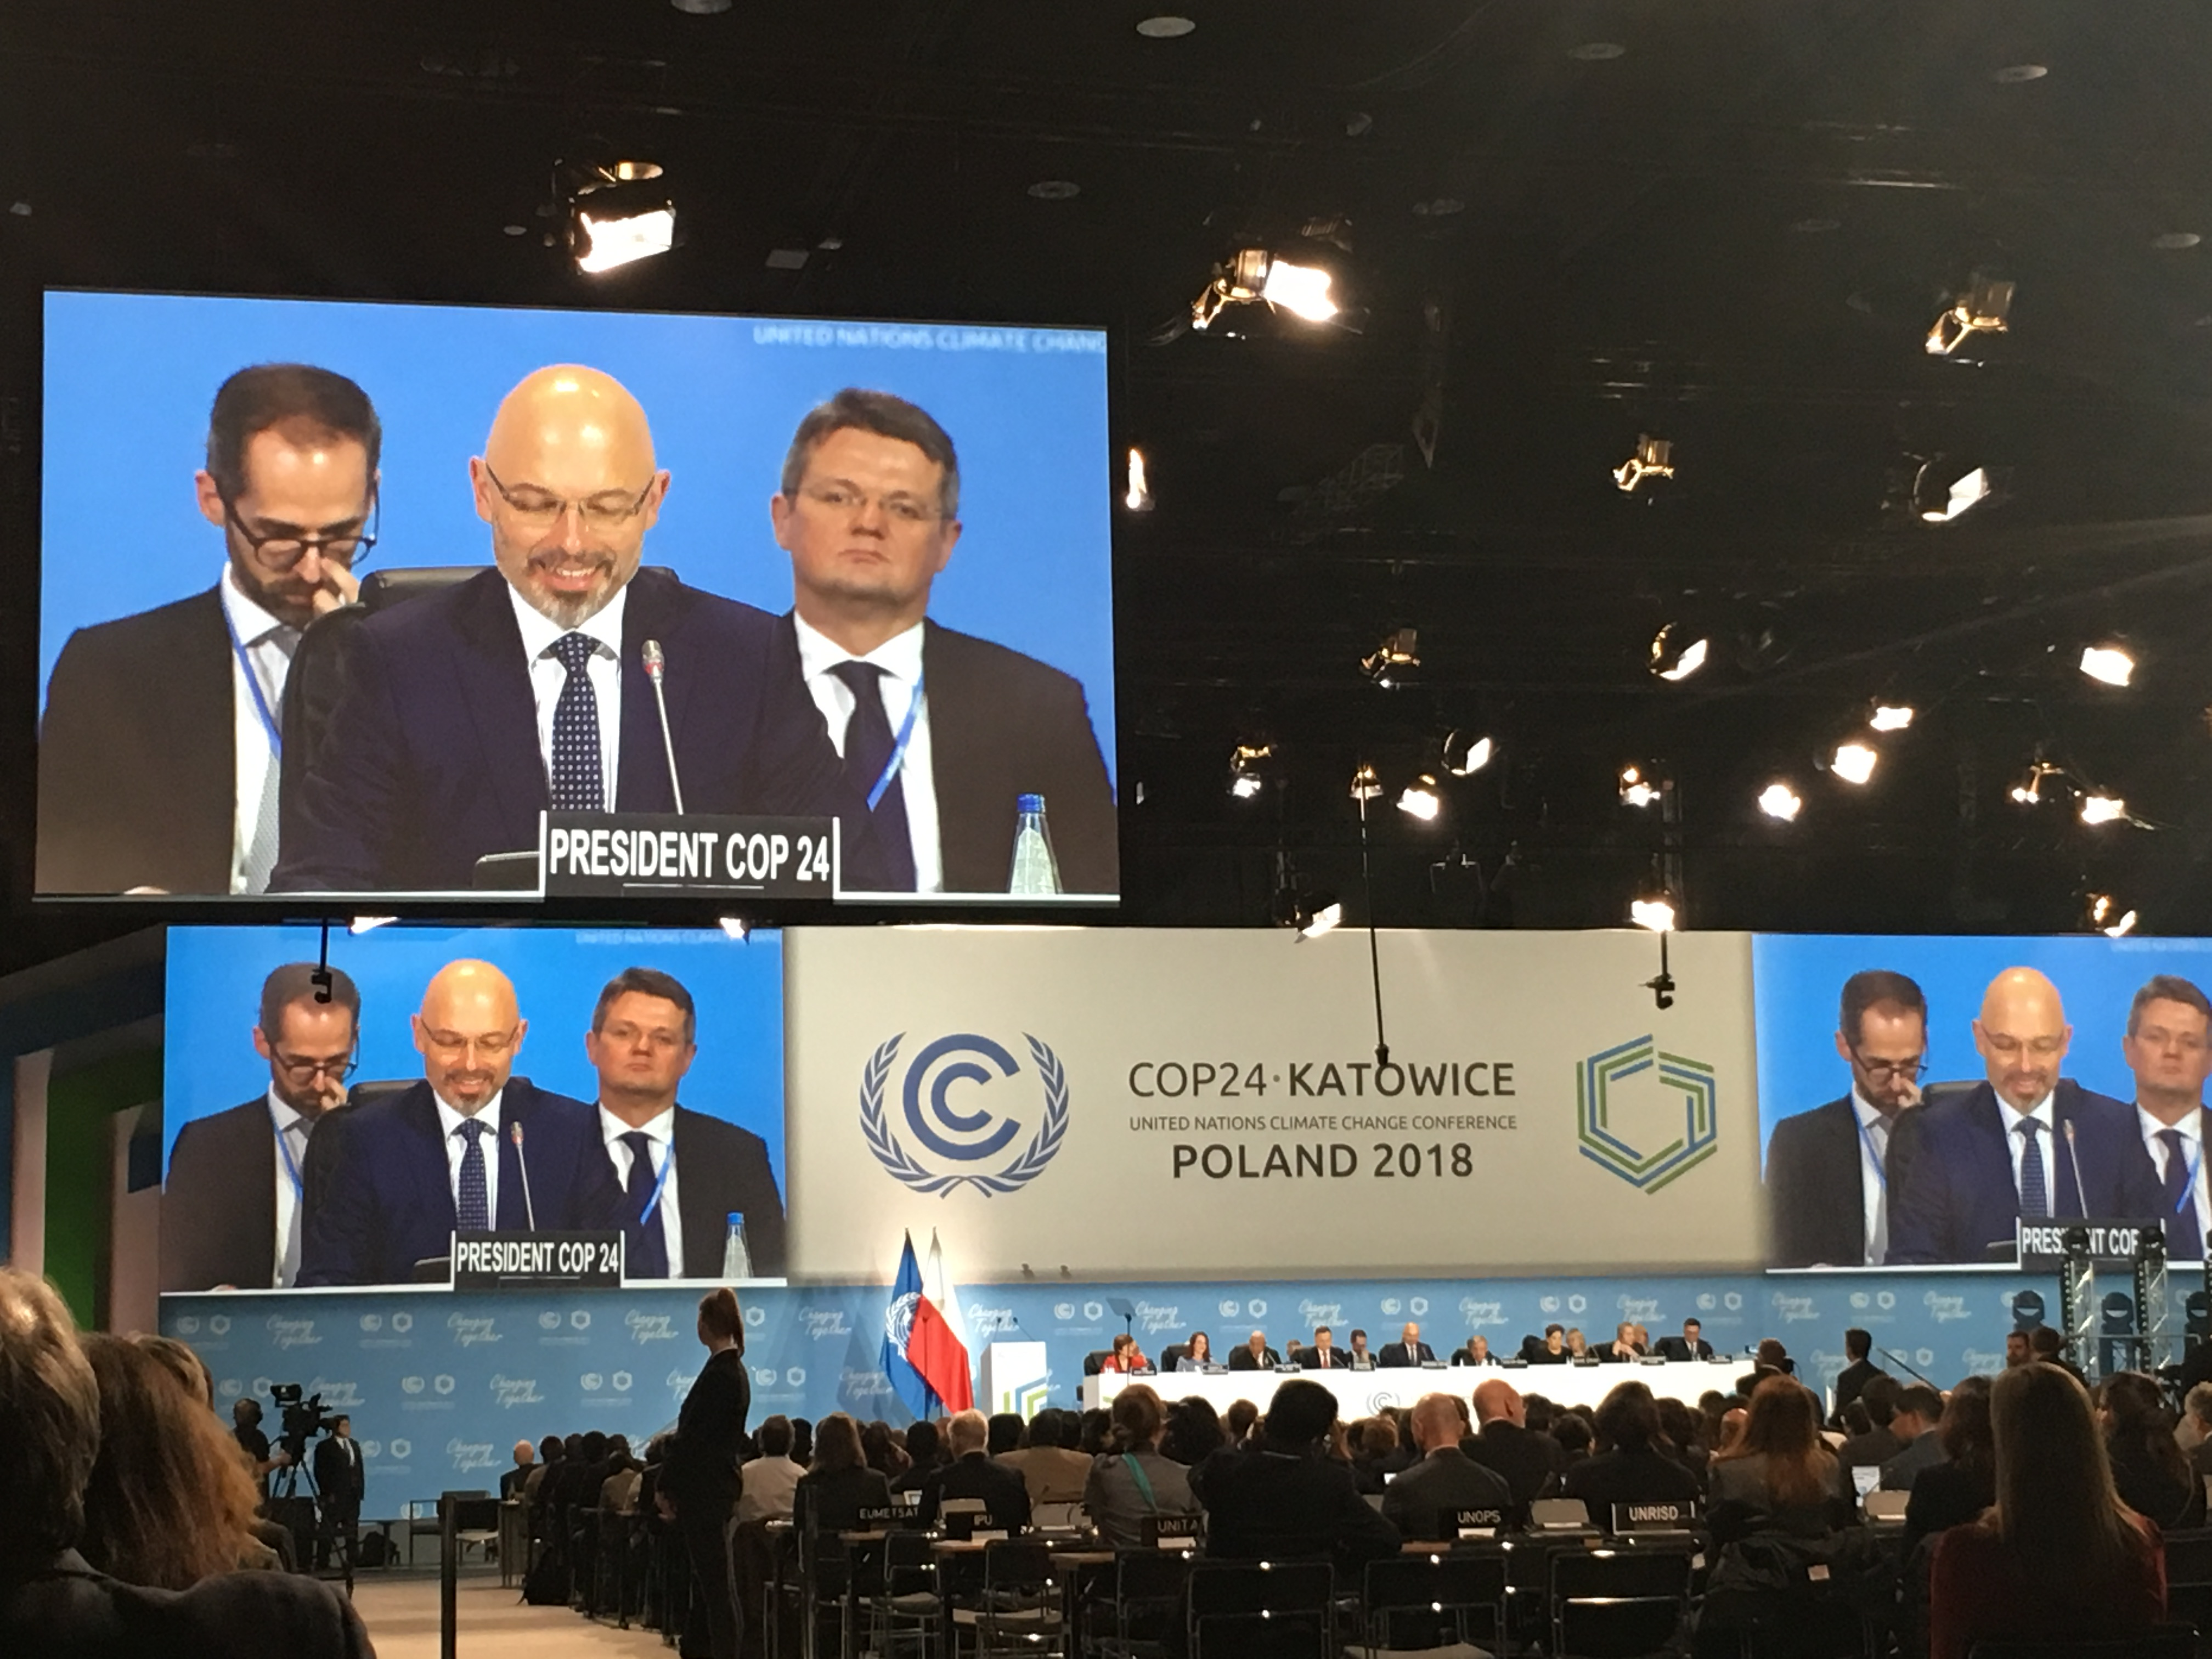 Displacement At The Katowice Climate Change Conference In December 2018 (COP 24)